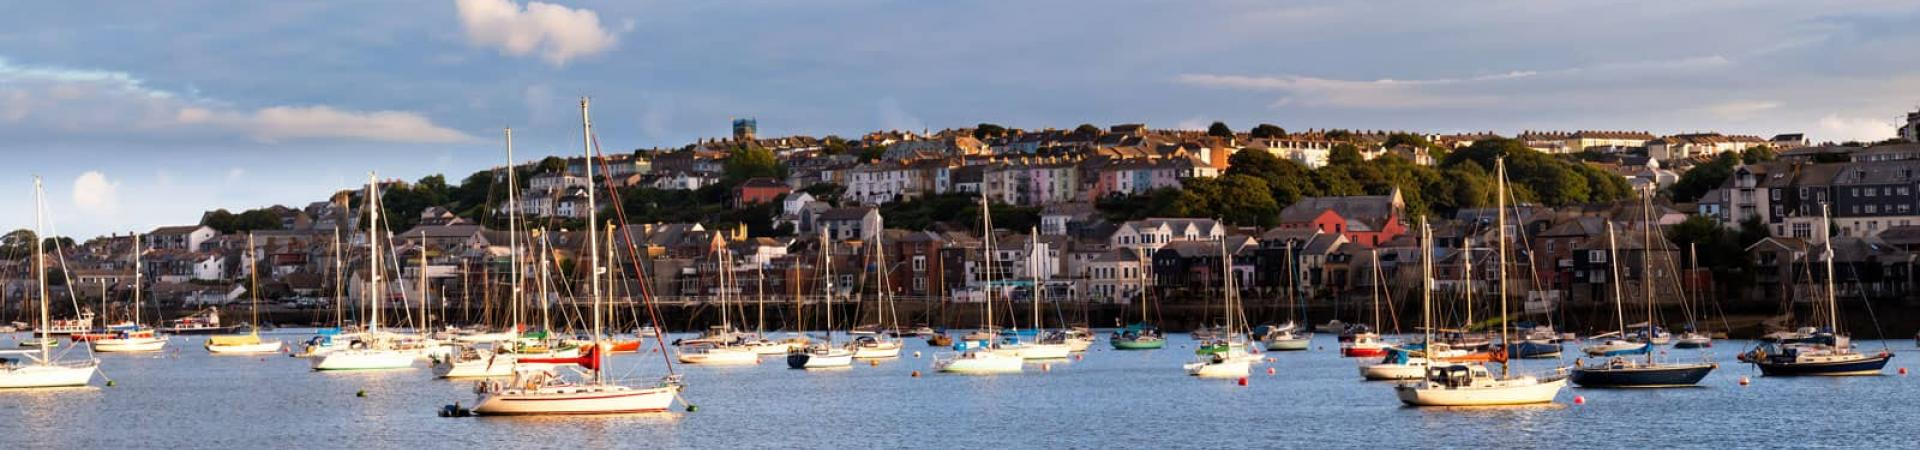 Falmouth harbour in Cornwall